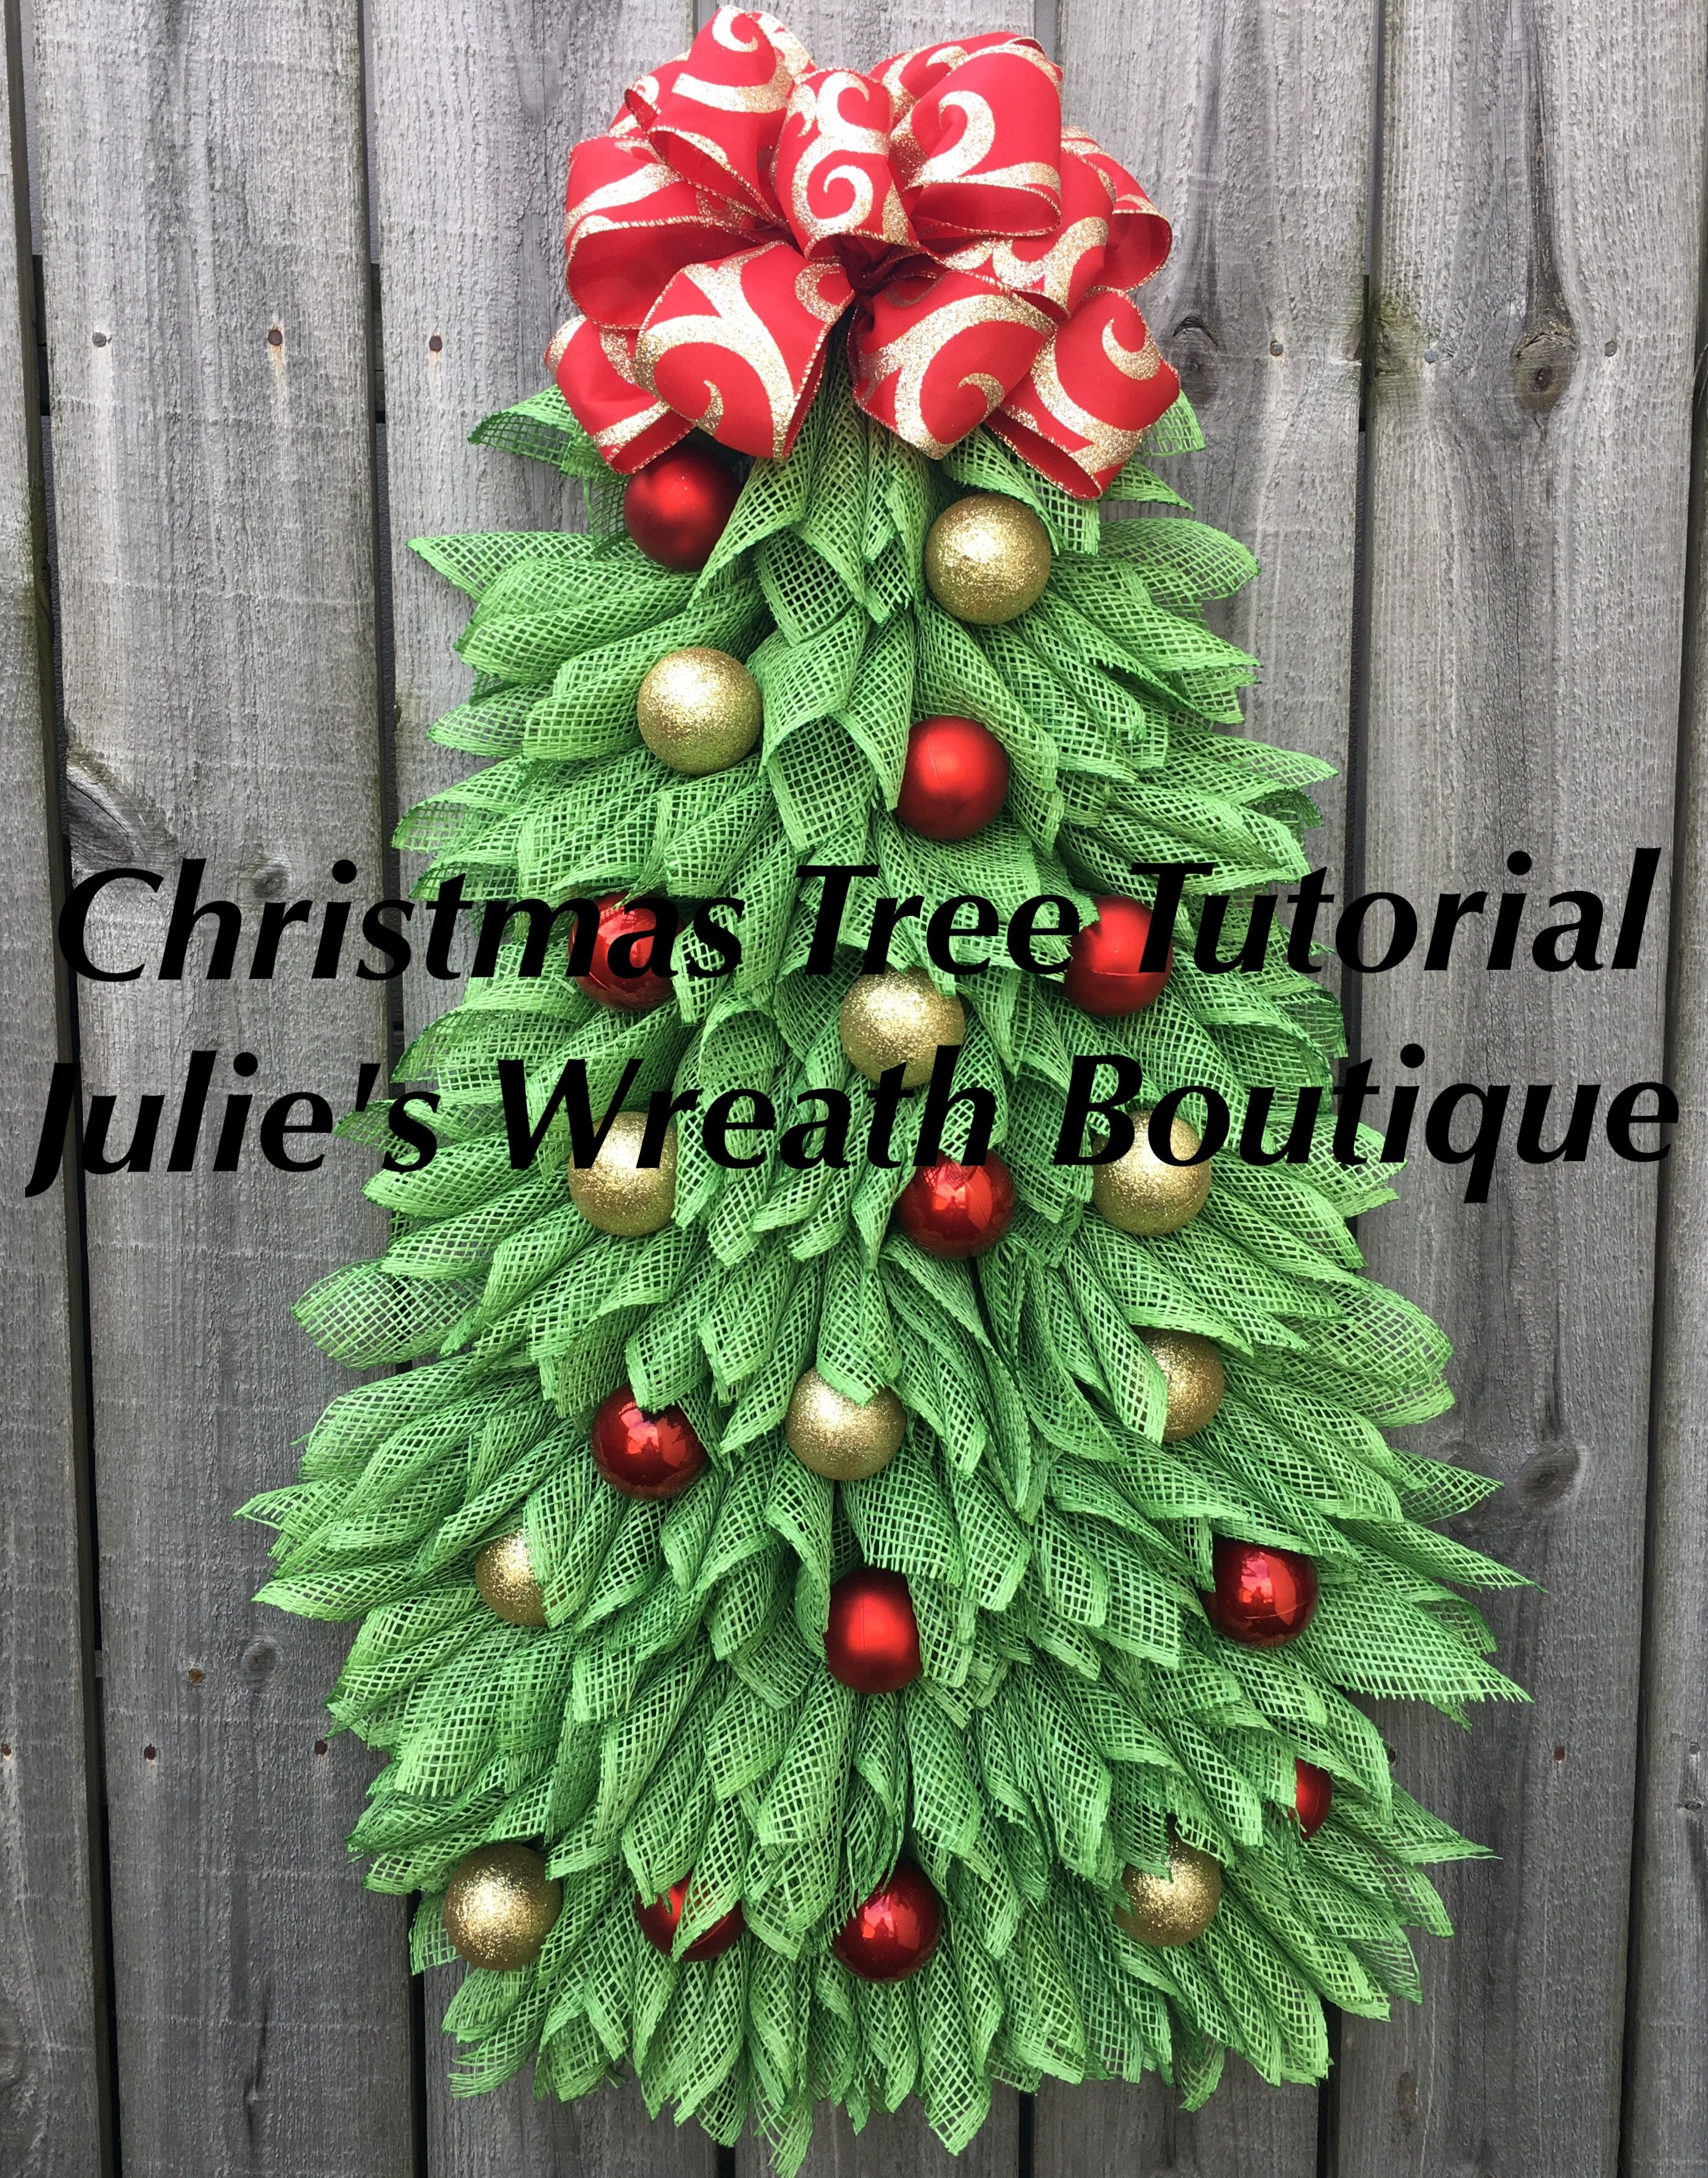 Christmas Tree Tutorial Angel Wreath Tutorial Diy Christmas Wreath Tutorial Video Tutorial Make Your Own Wreath Video Tutorial Mesh Christmas Tree Make Your Own Wreath Diy Christmas Tree